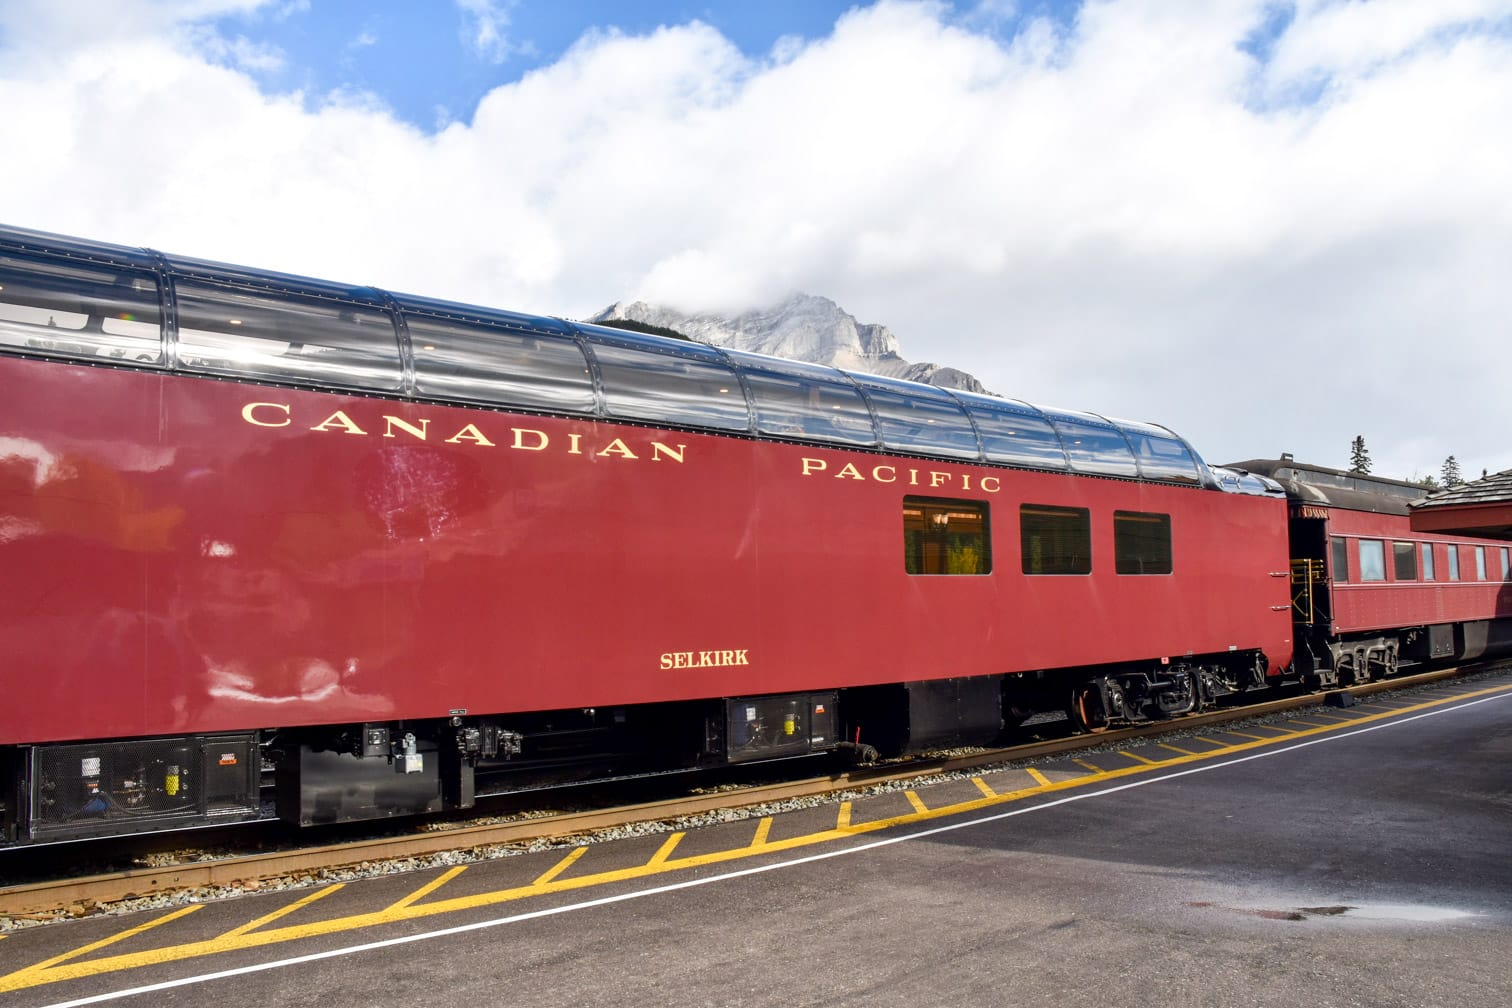 Exterior of the Royal Canadian Pacific train